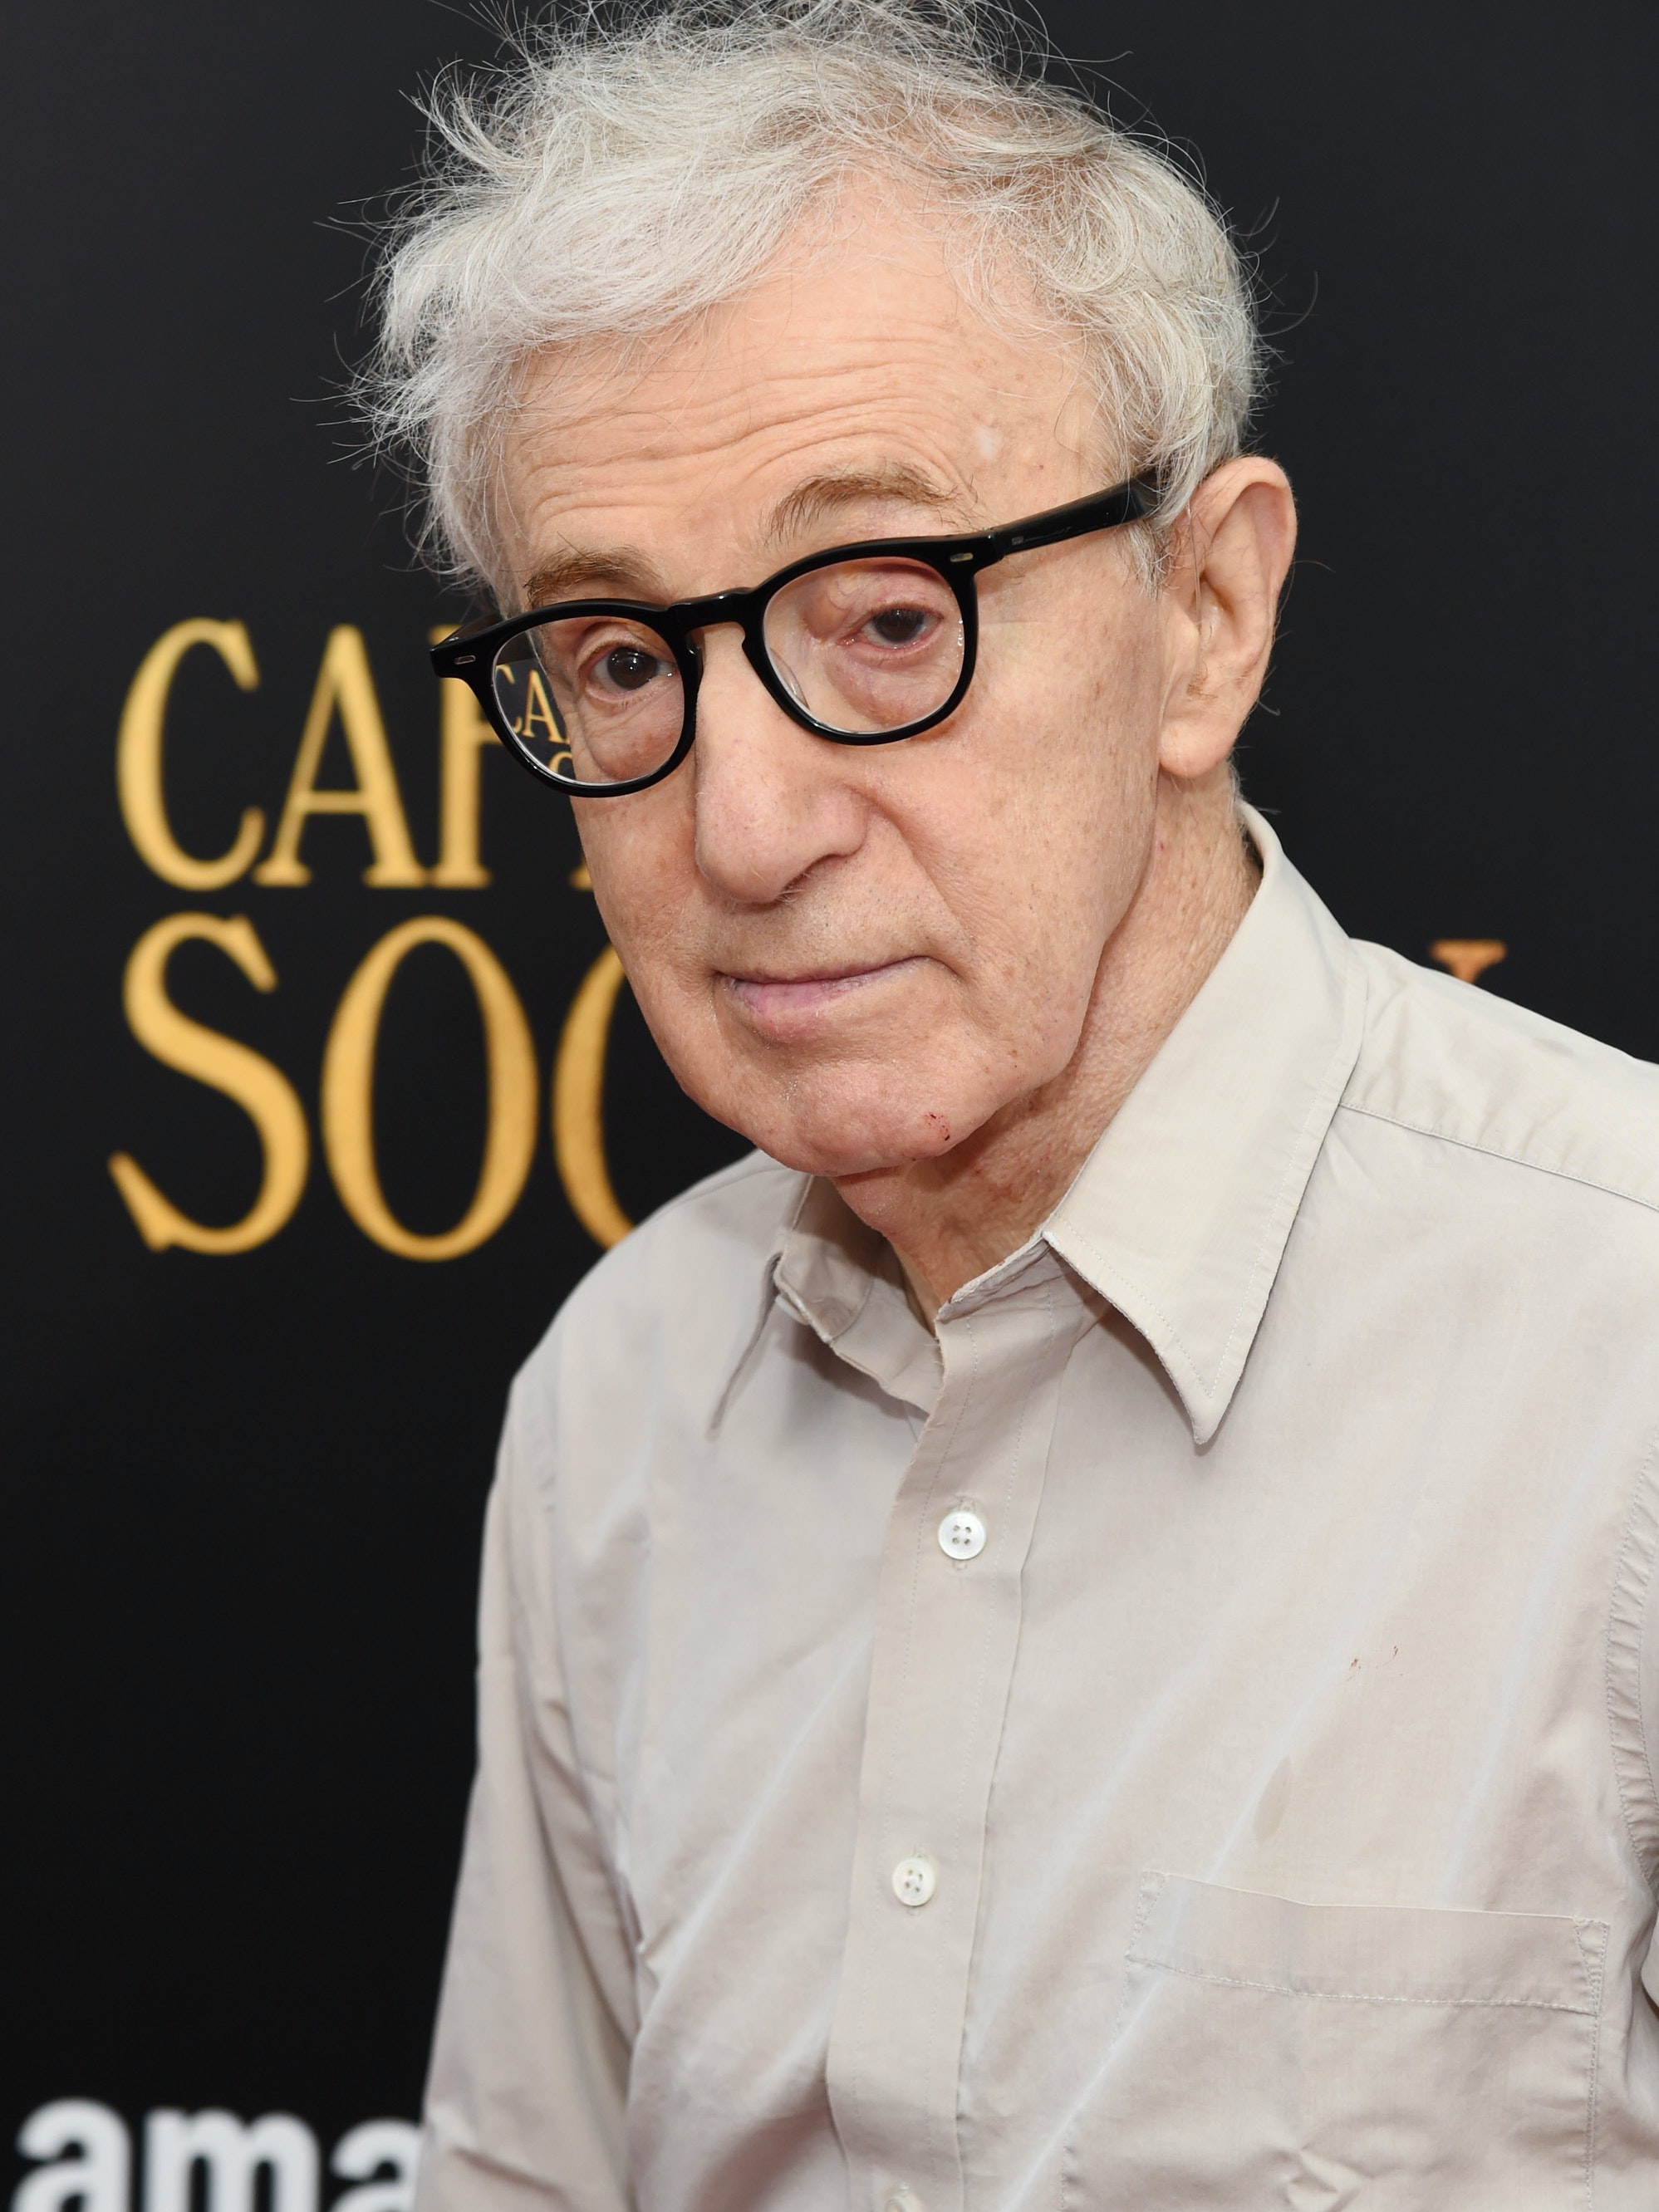 NEW YORK, NY - JULY 13:  Woody Allen attends the premiere of 'Cafe Society' hosted by Amazon & Lionsgate with The Cinema Society at Paris Theatre on July 13, 2016 in New York City.  (Photo by Jamie McCarthy/Getty Images)